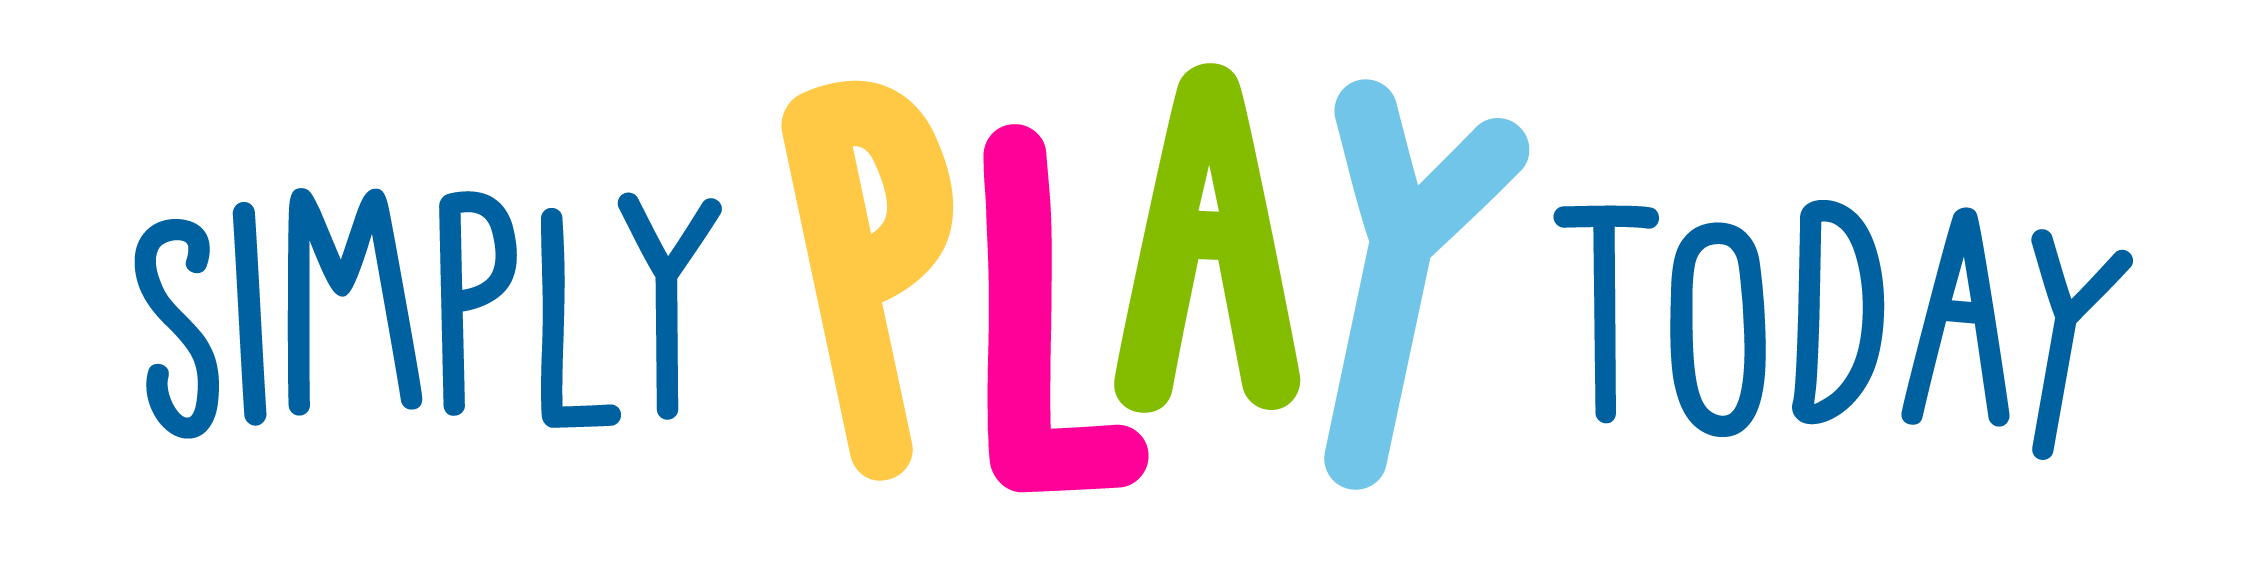 Simply Play Today